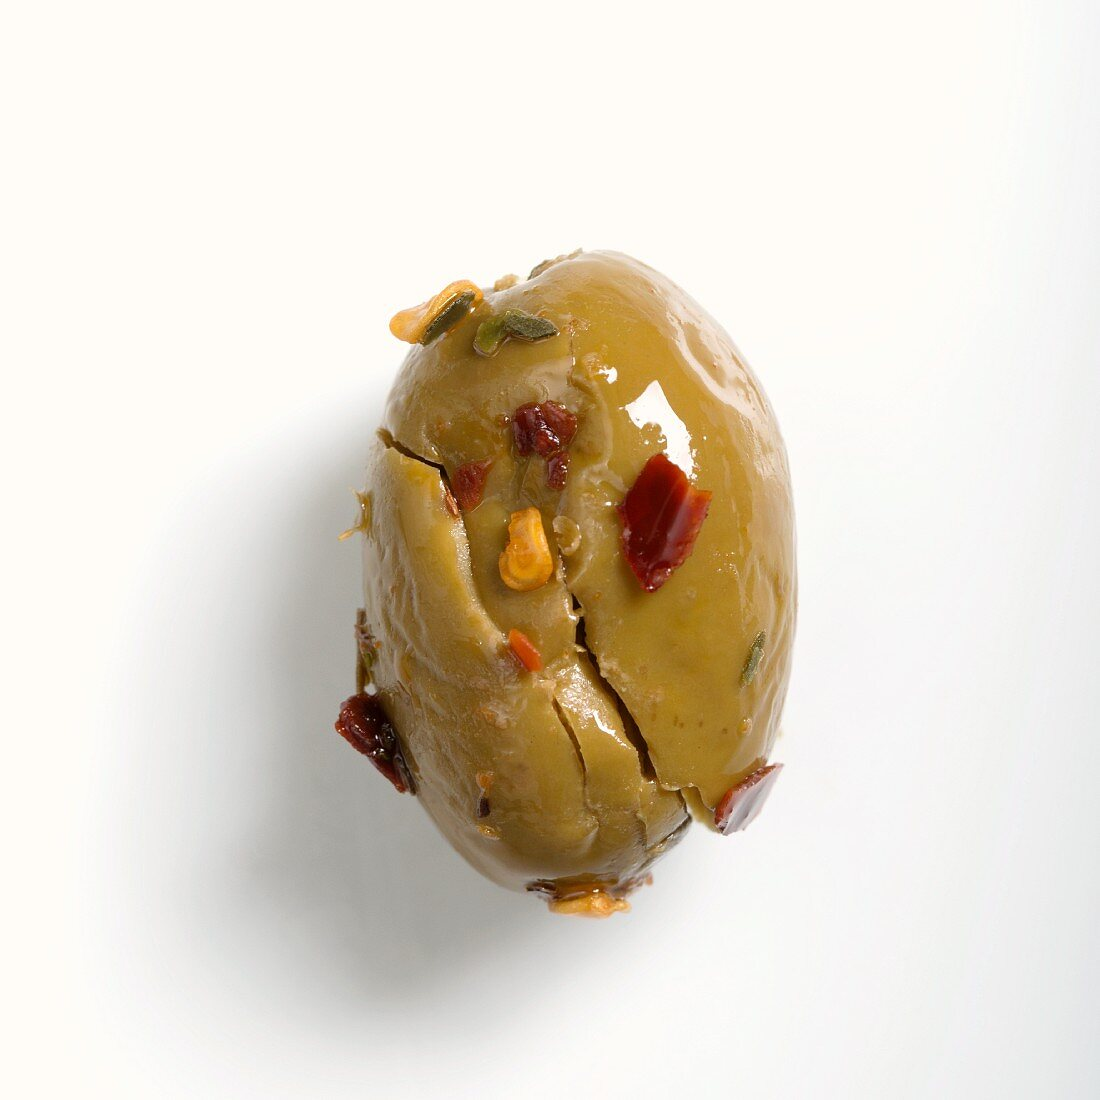 Oliva schiacciata (crushed, pitted and preserved olives, Italy)